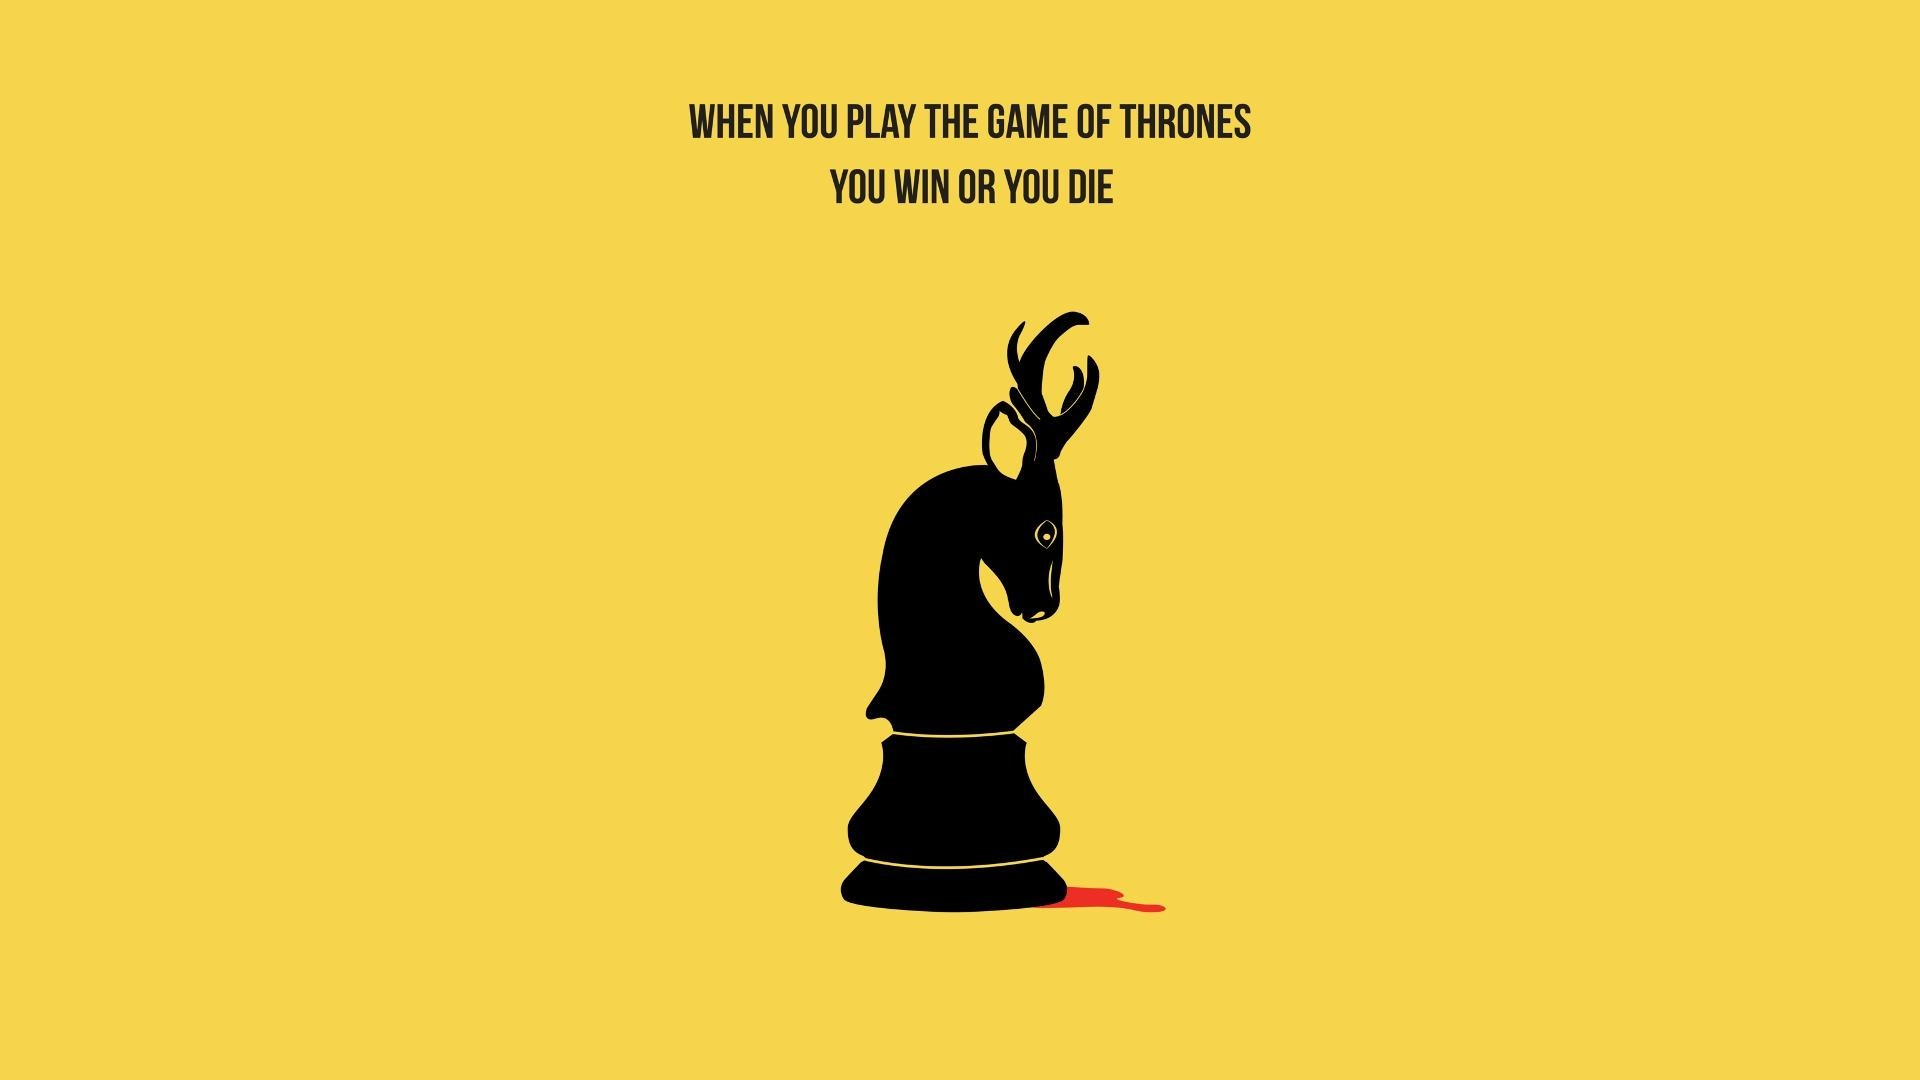 Game of Thrones Cool Wallpaper   Wallpaper High Definition High 1920x1080